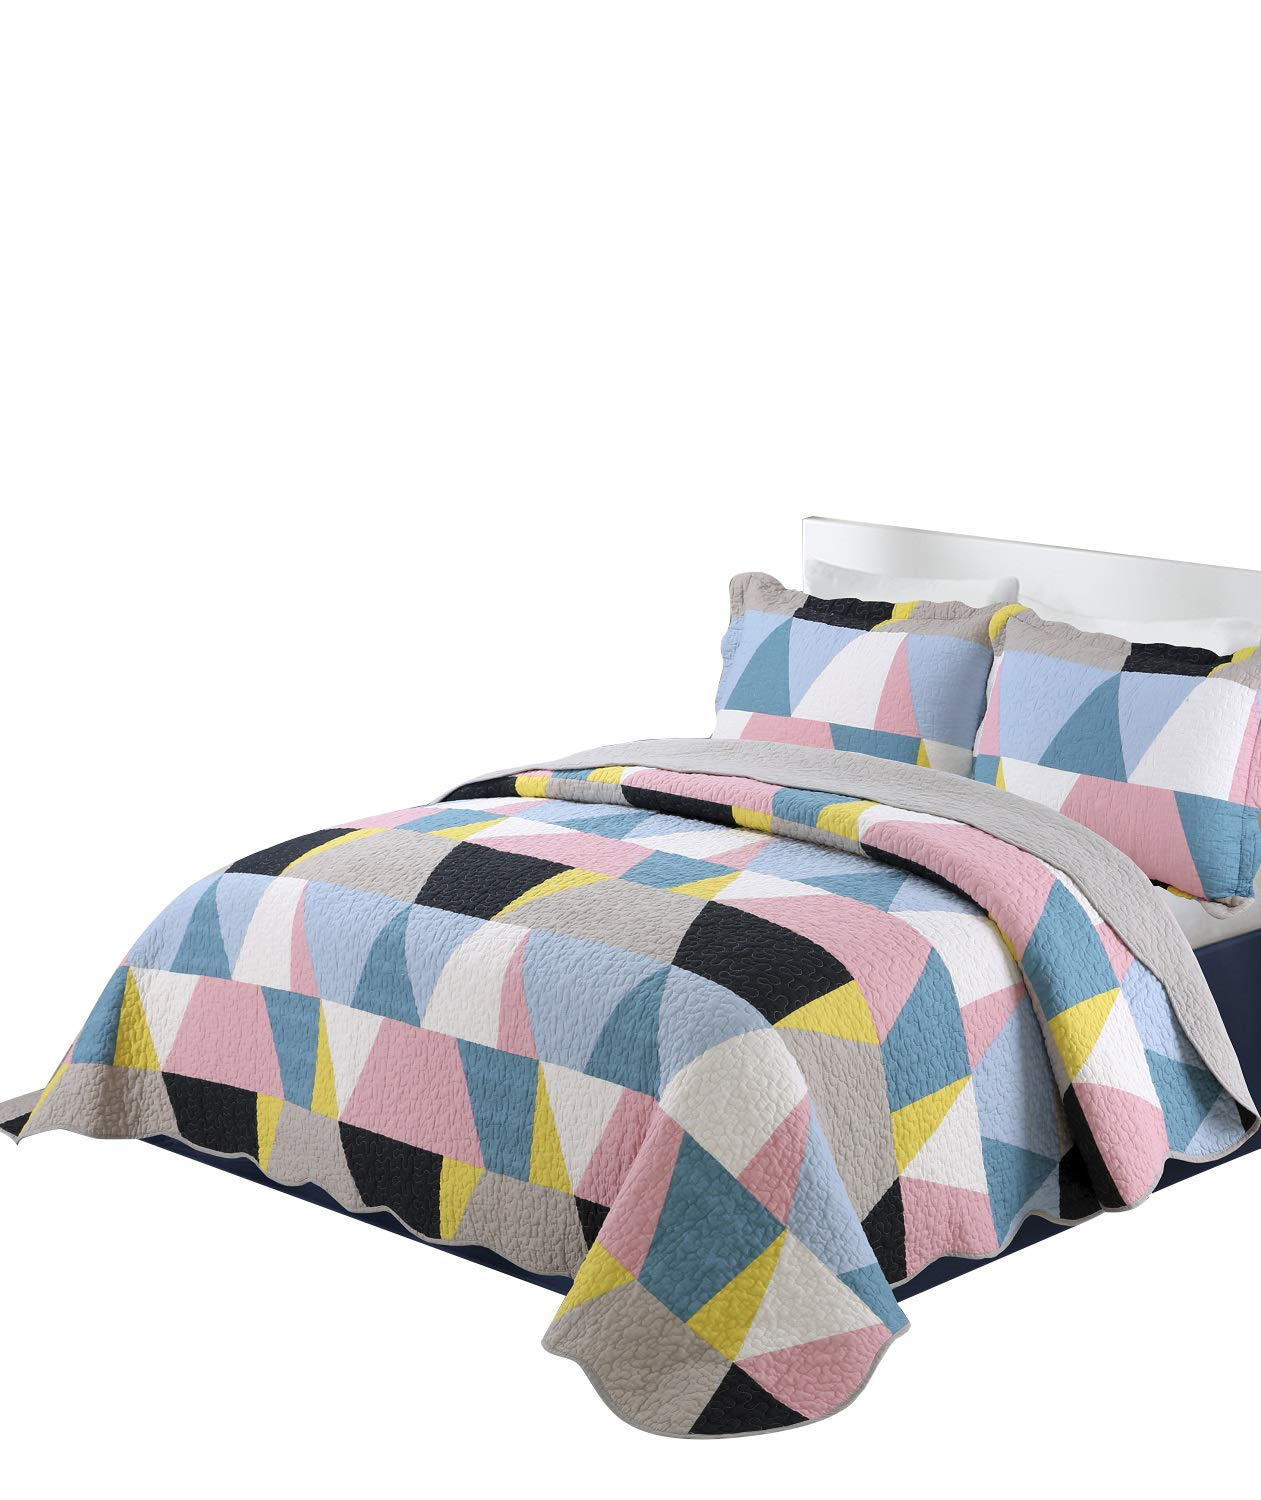 vivinna home textile Cotton Quilt Twin Size Sets- Patchwork Bedspread Blanket (Geometry, Twin:68''X88'')